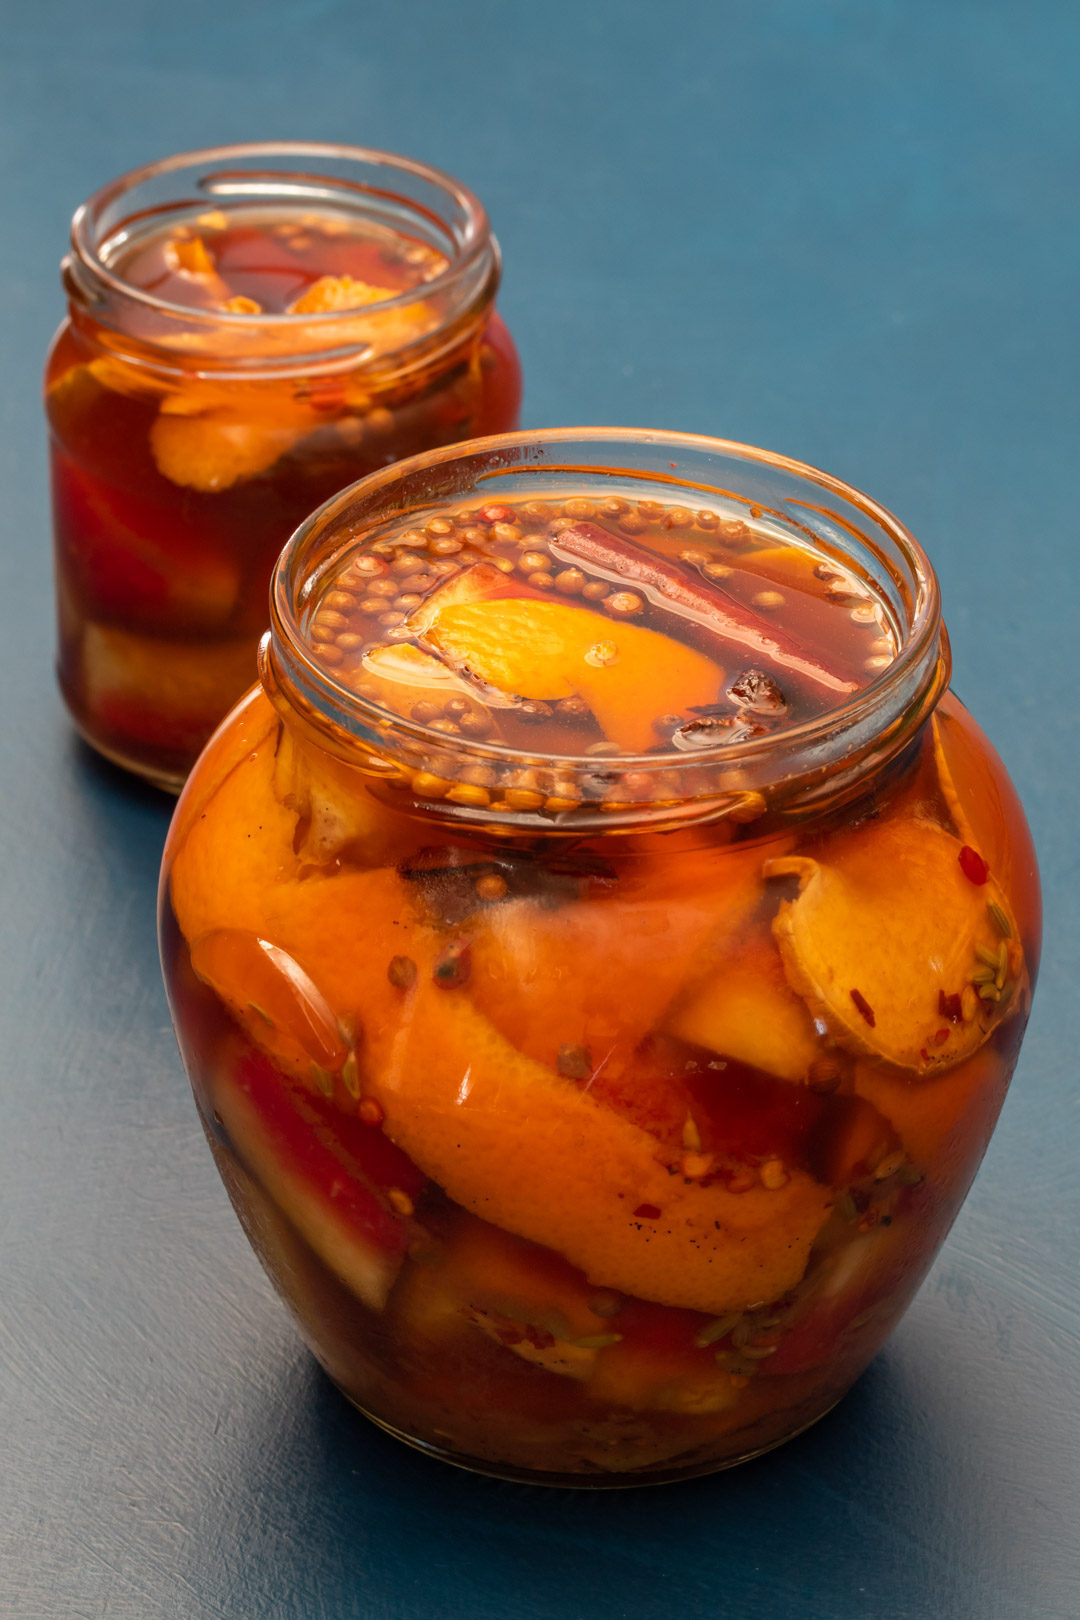 Quick watermelon rind pickle with cinnamon and chili: 2 jars one near and one far